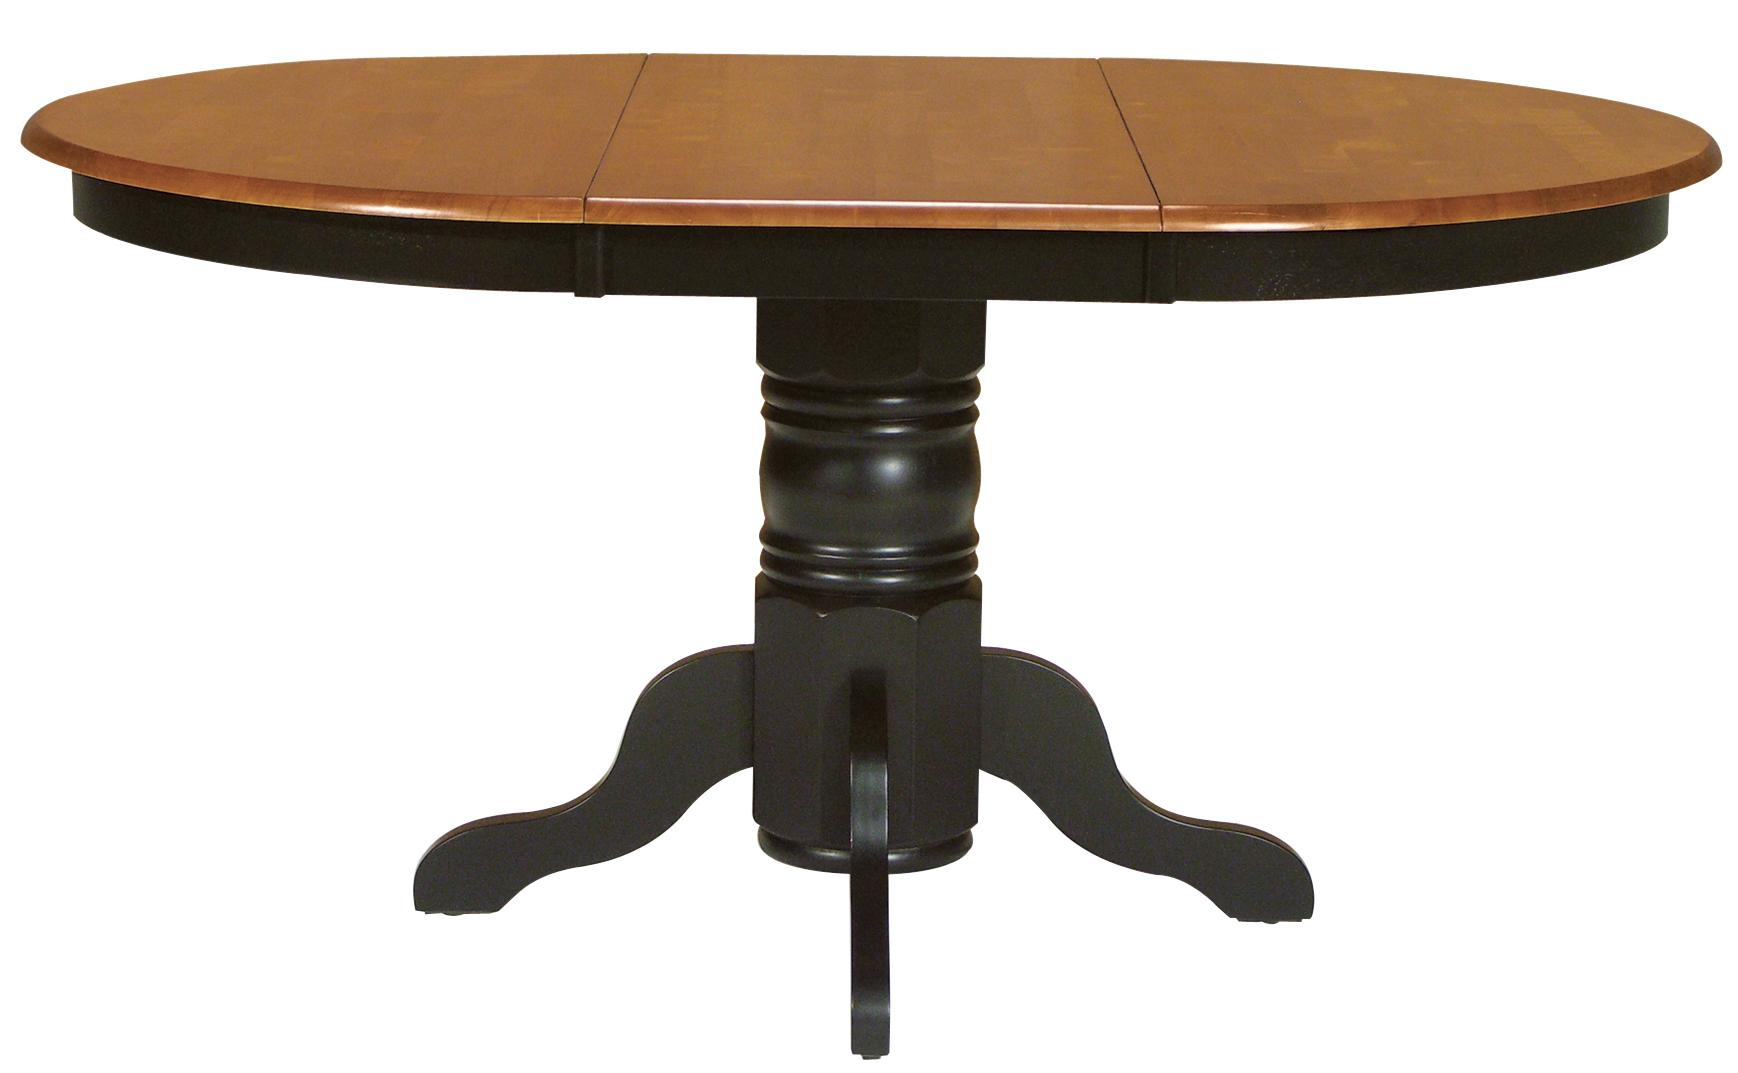 oval kitchen table Two Toned Oval Dining Table with Turned Pedestal Base